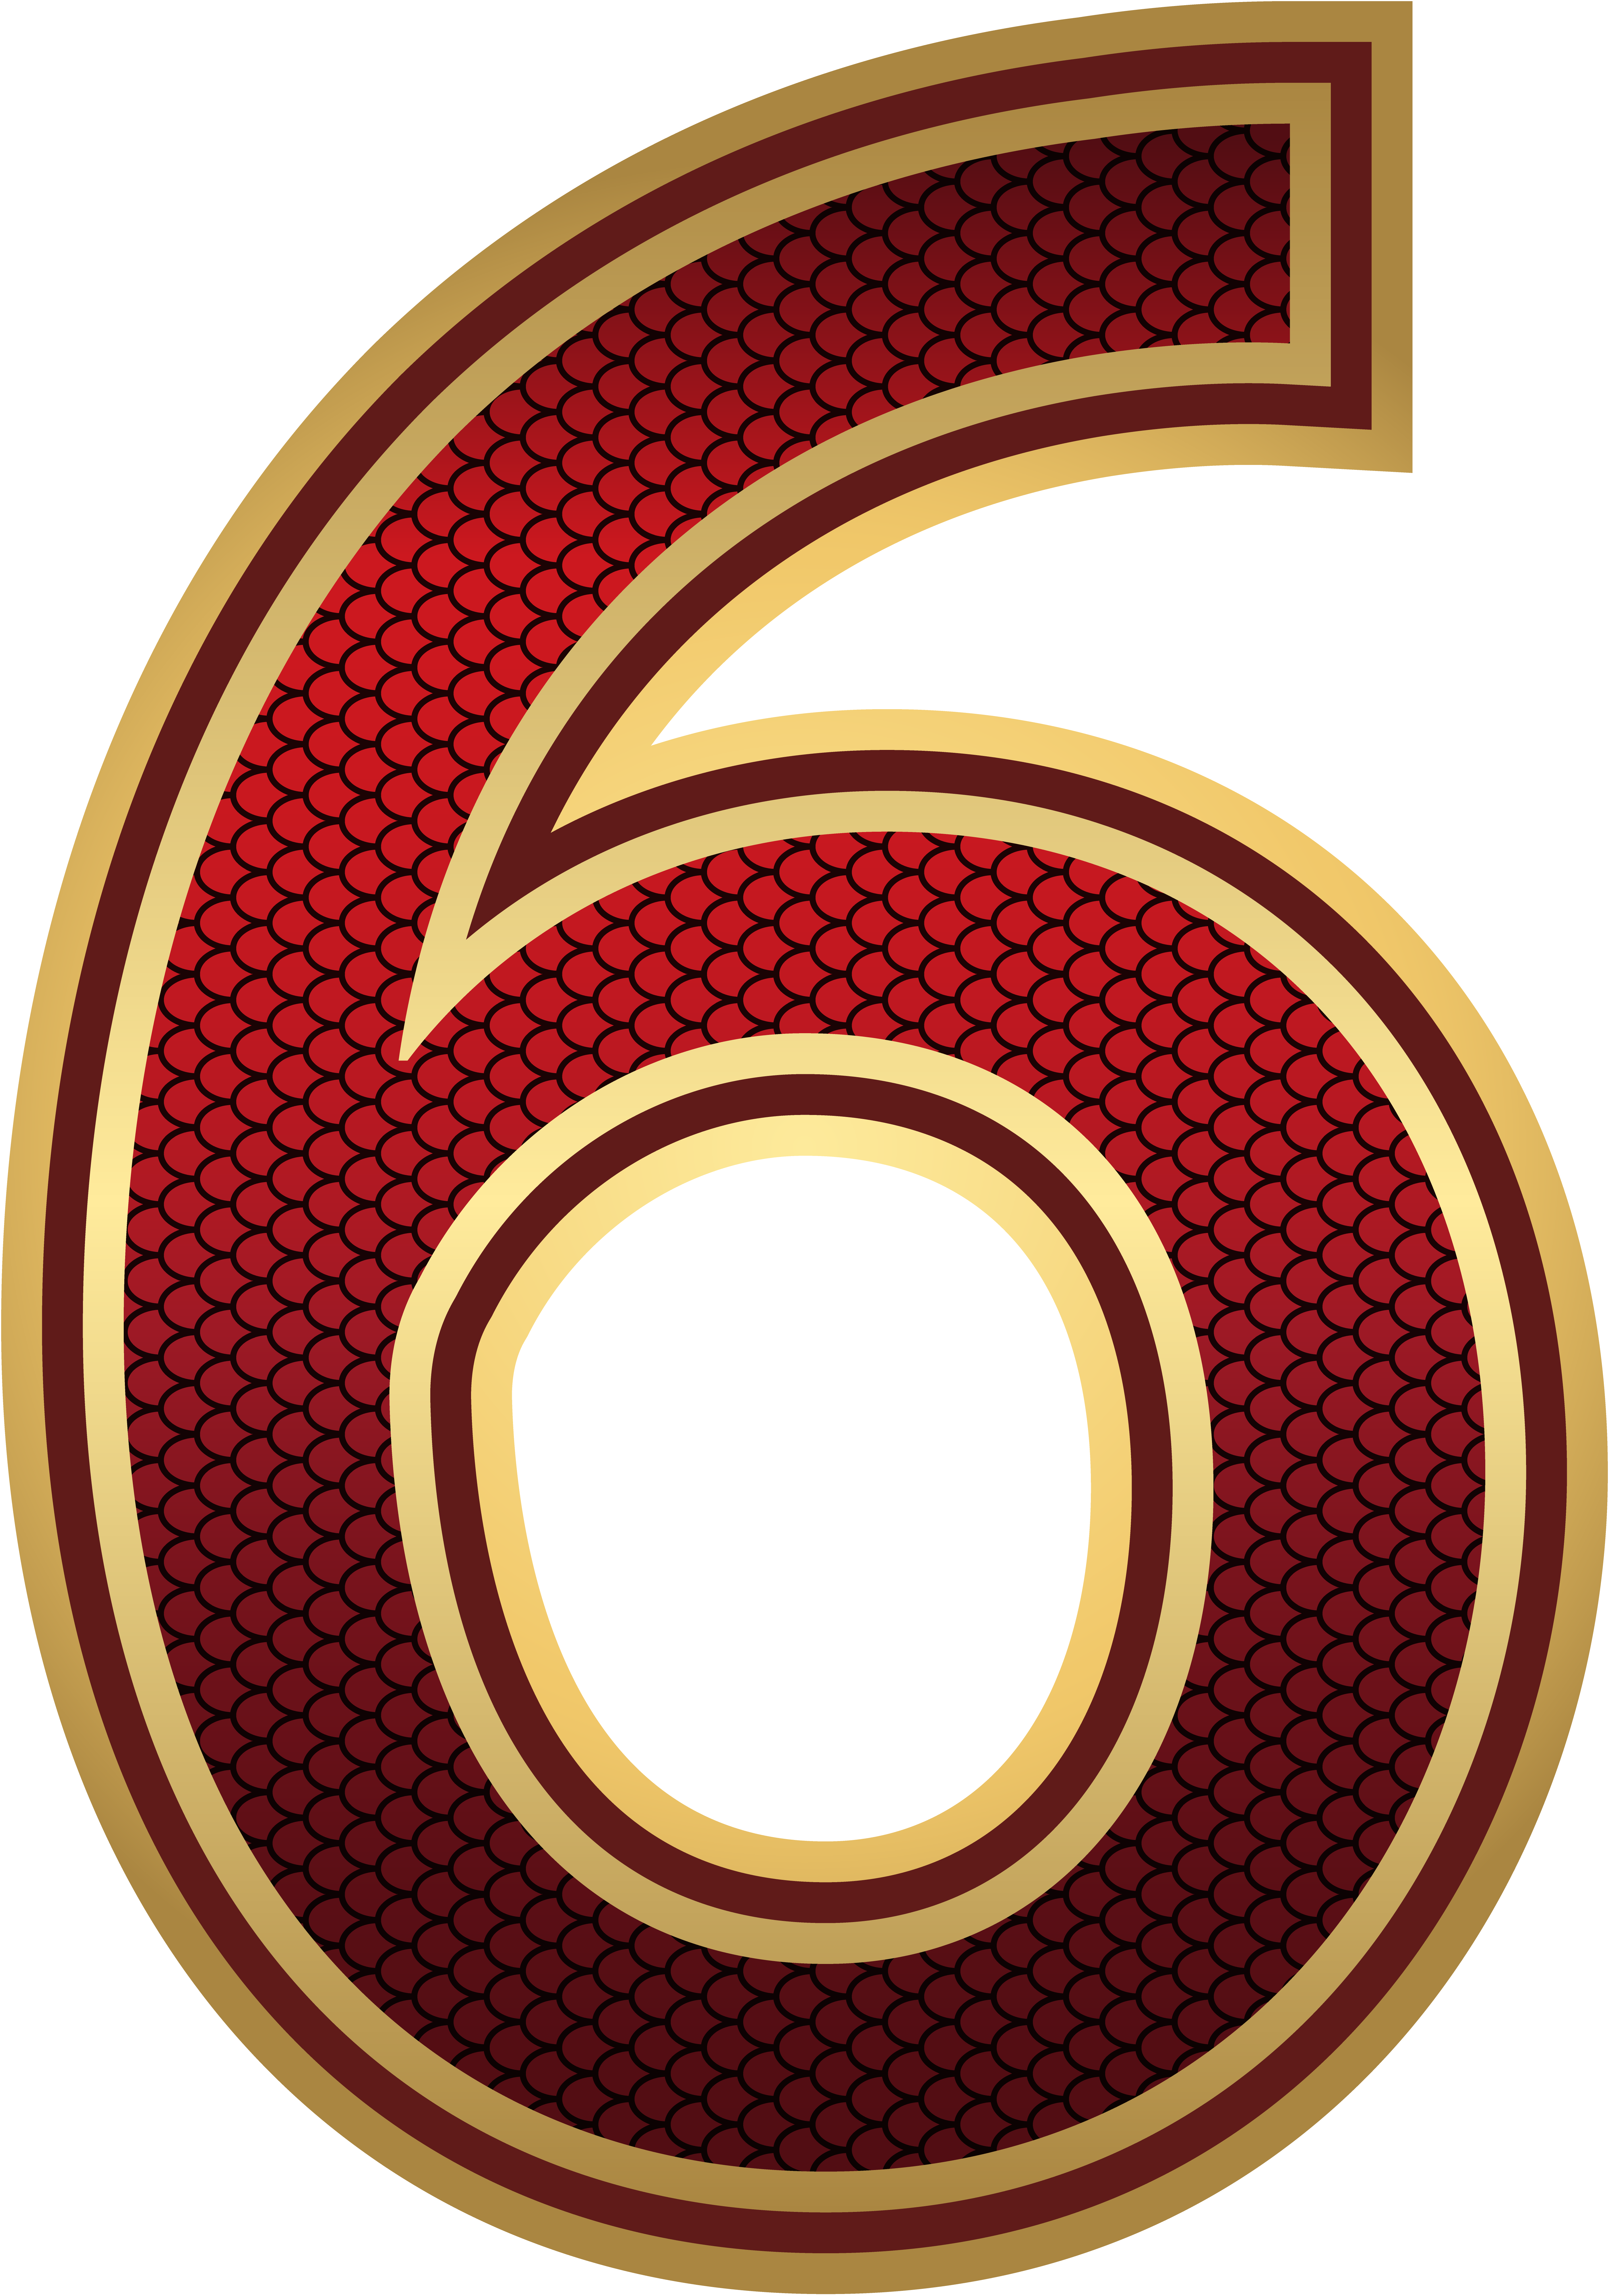 Number 3 clipart golden. Red and gold six